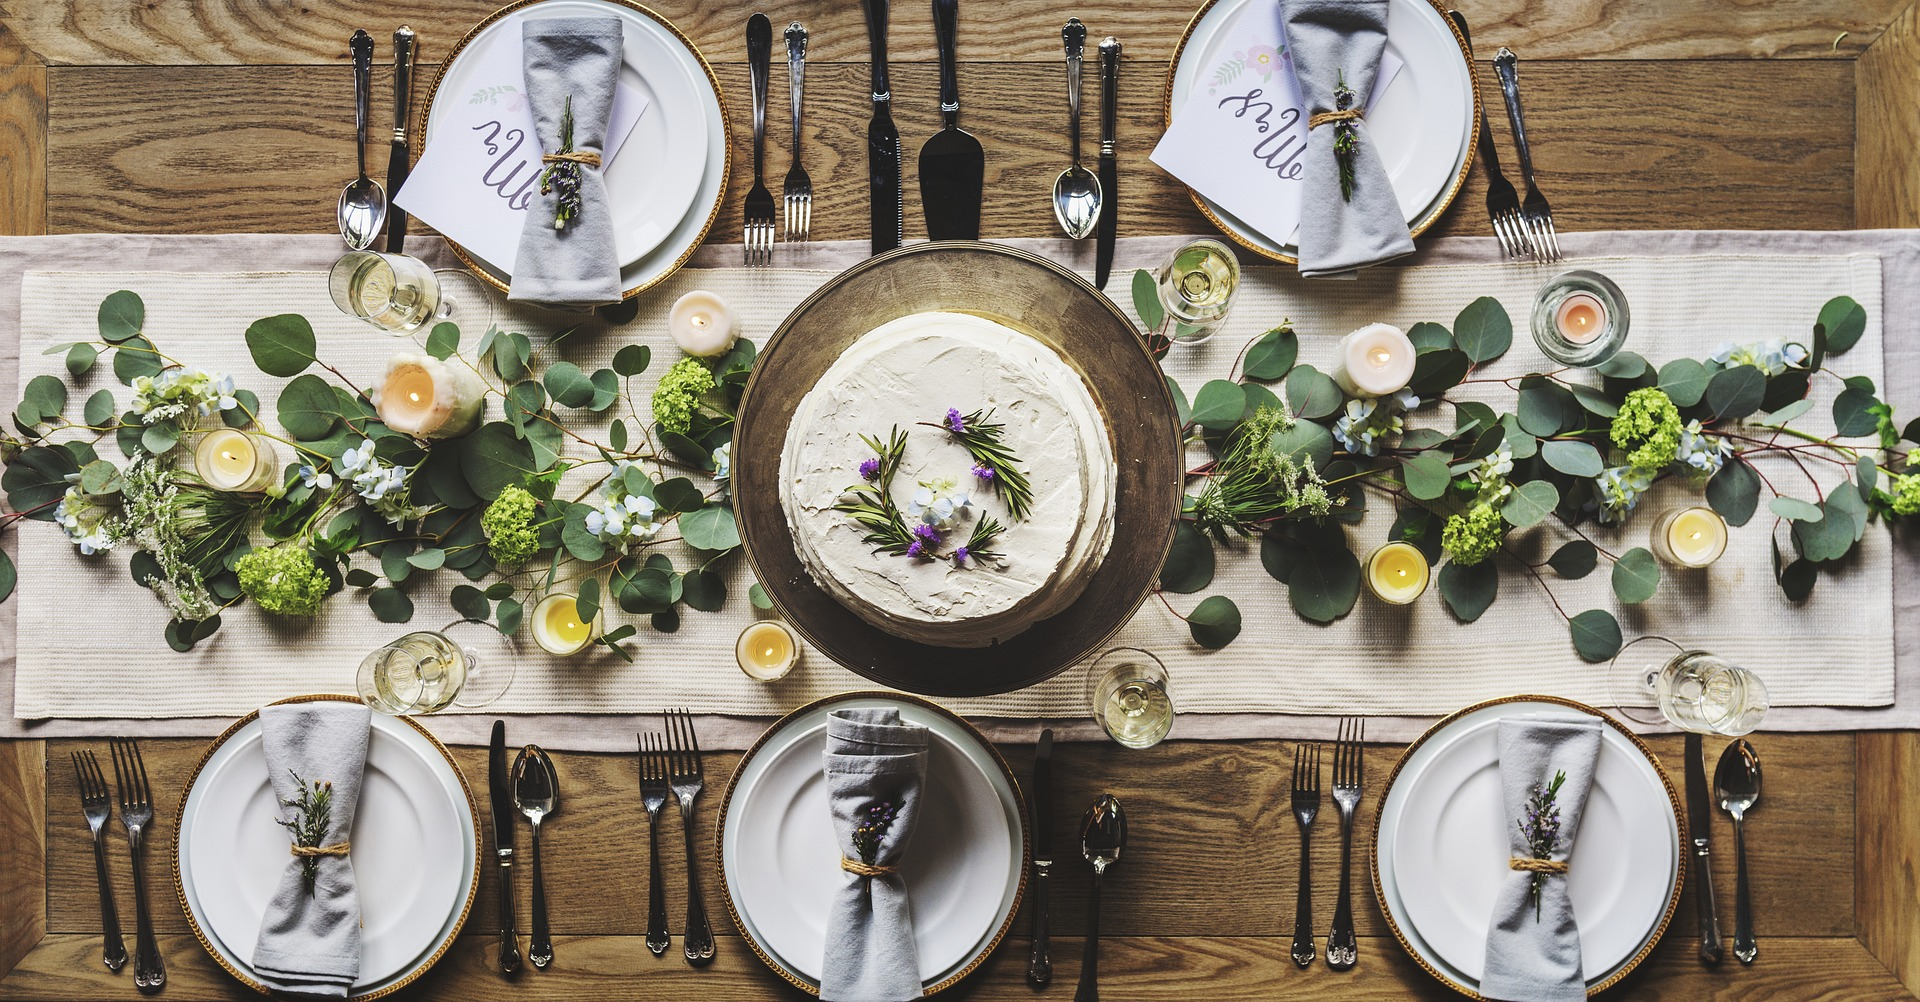 Modern Wedding Guest Etiquette Rules - Can You Wear White to a Wedding as a Guest